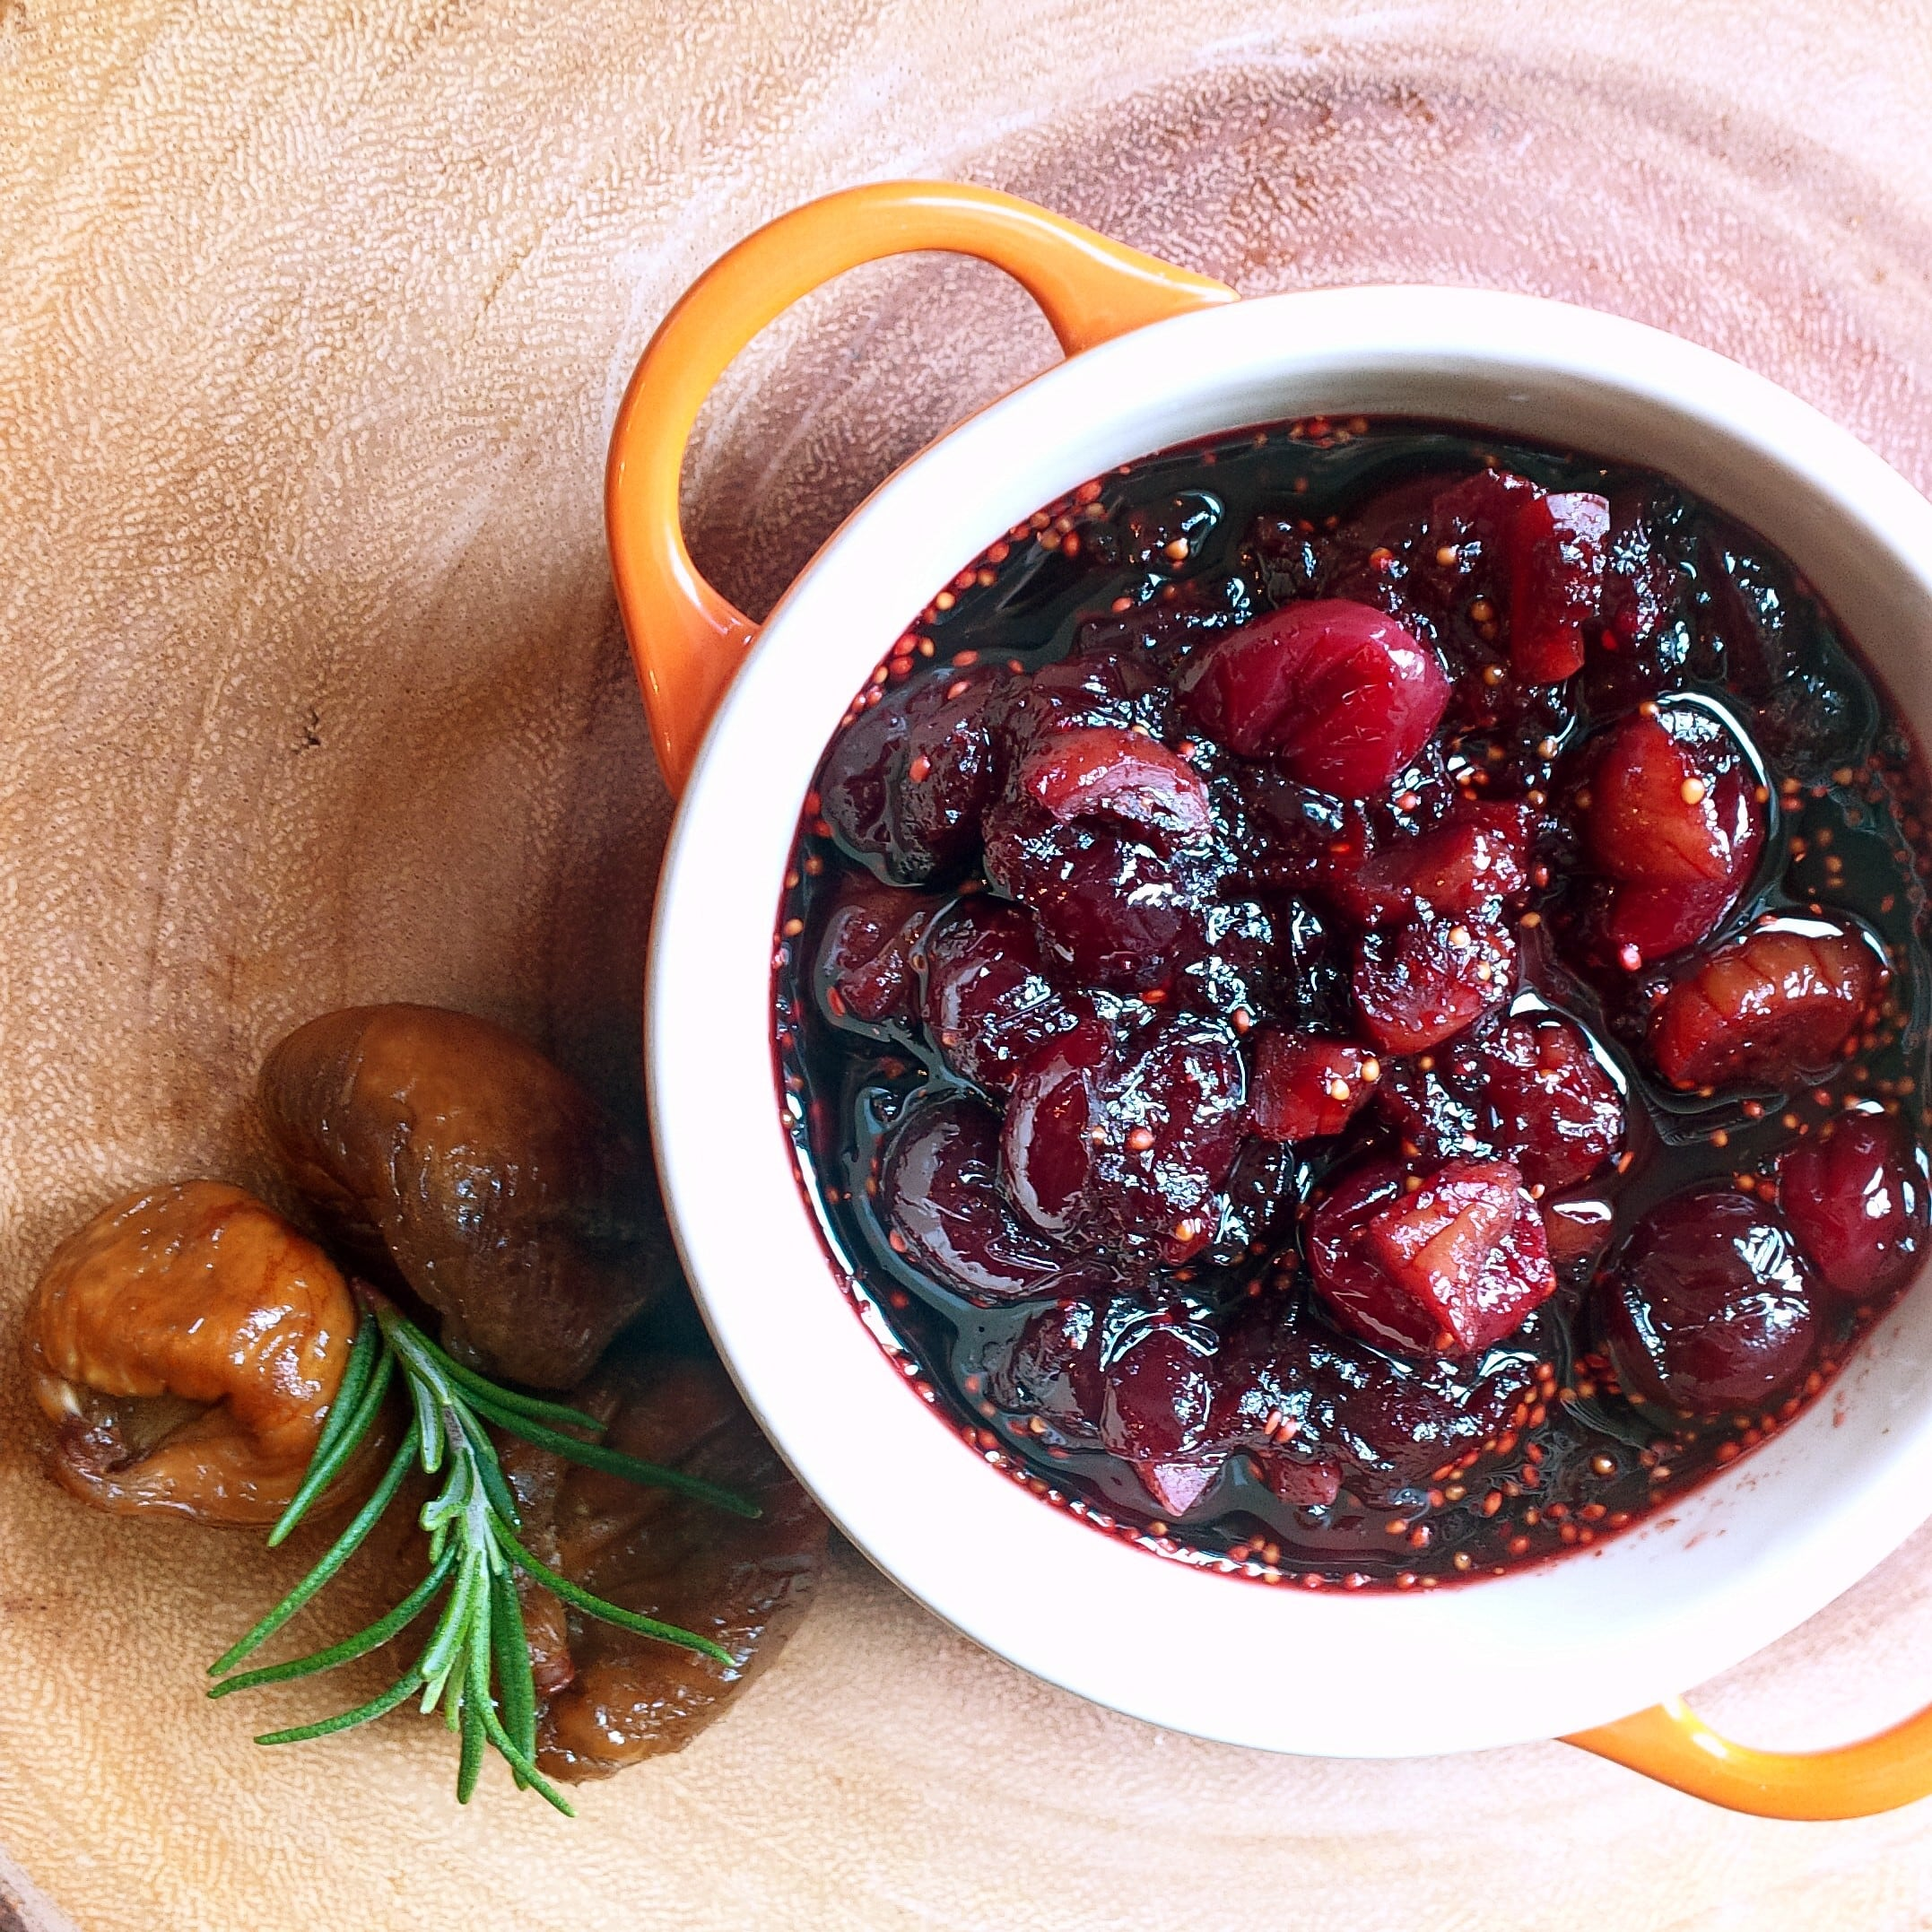 Cranberry sauce with dried figs in the plate